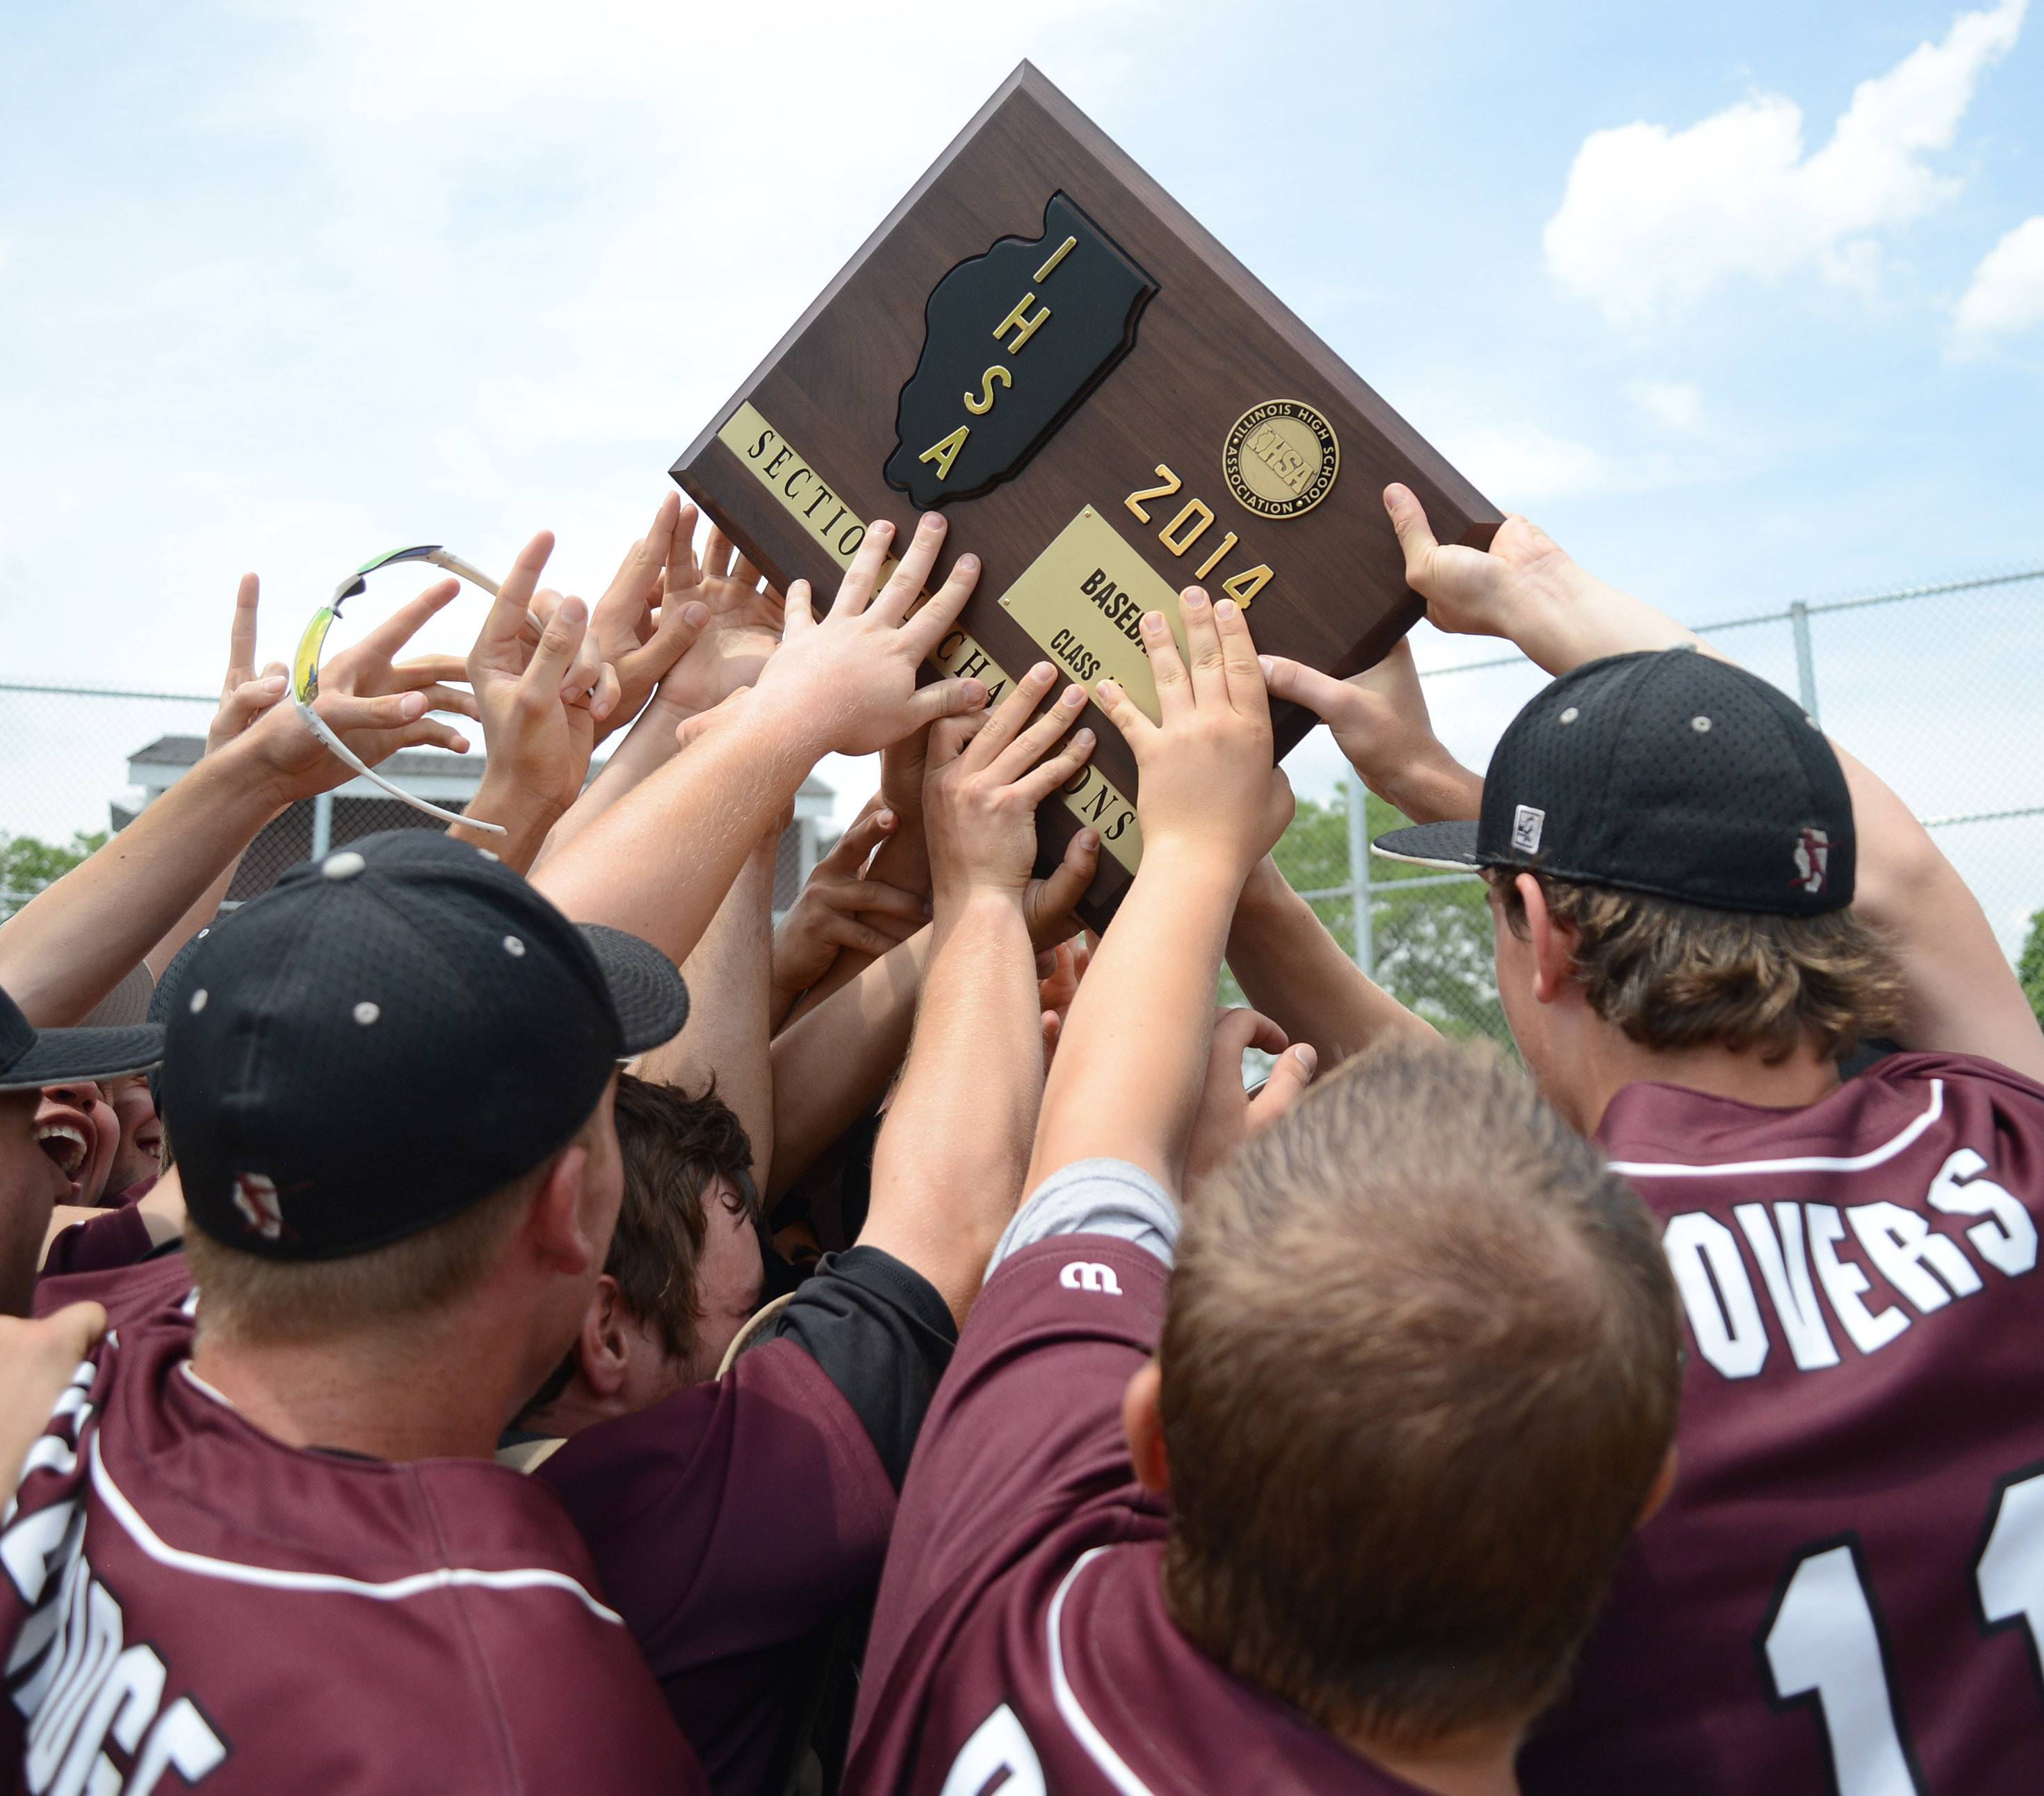 Prairie Ridge hoists up their plaque in celebration after winning the Class 4A McHenry sectional championship by topping Jacobs at Peterson Park Saturday.